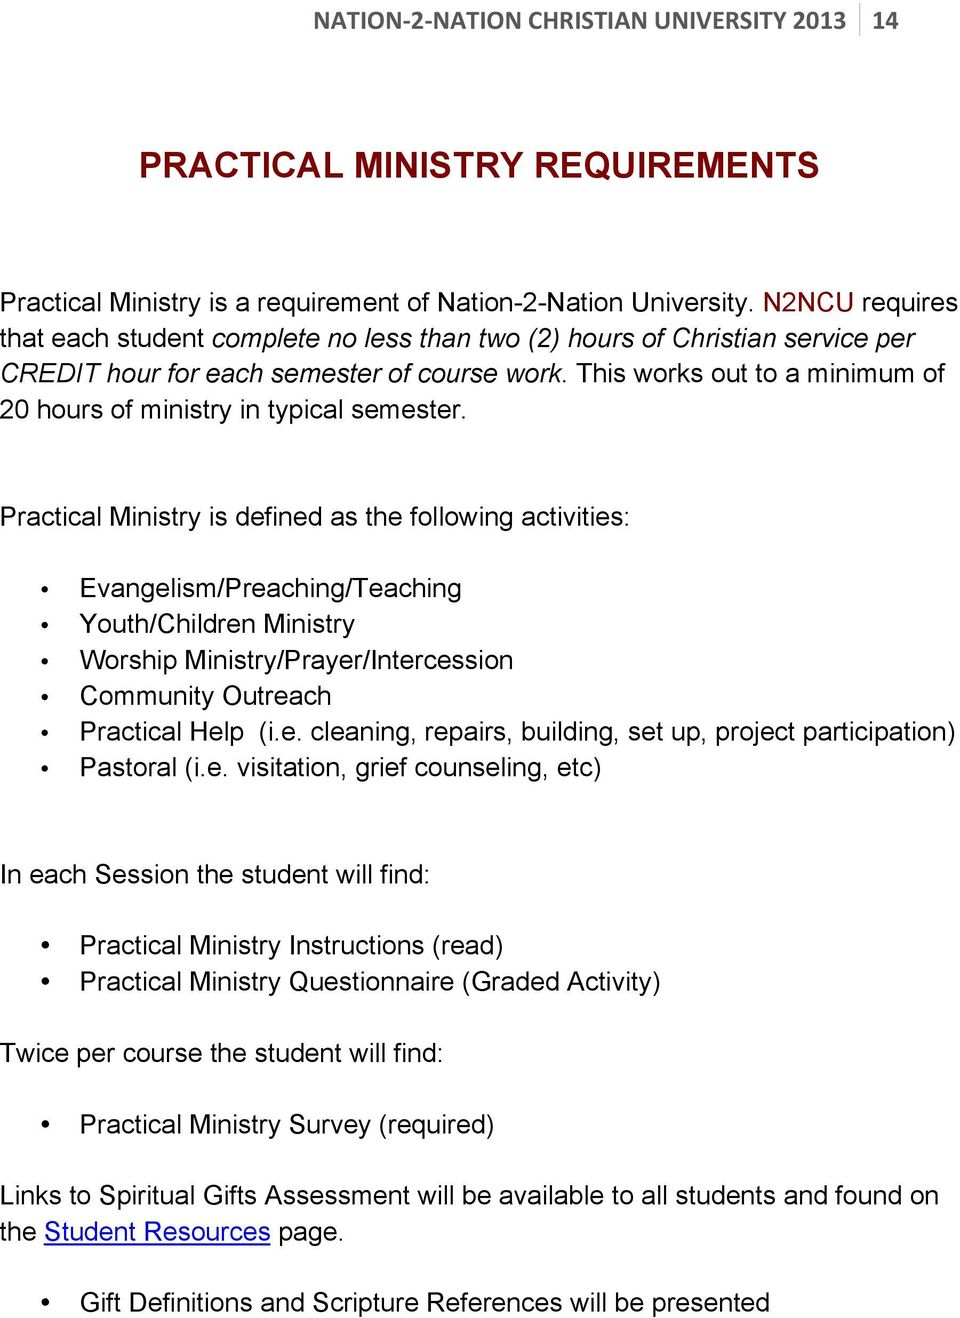 Nation 2 nation christian university nation 2 nation christian gift definitions and scripture references will be presented this works out to a minimum of 20 hours of ministry in typical semester negle Choice Image